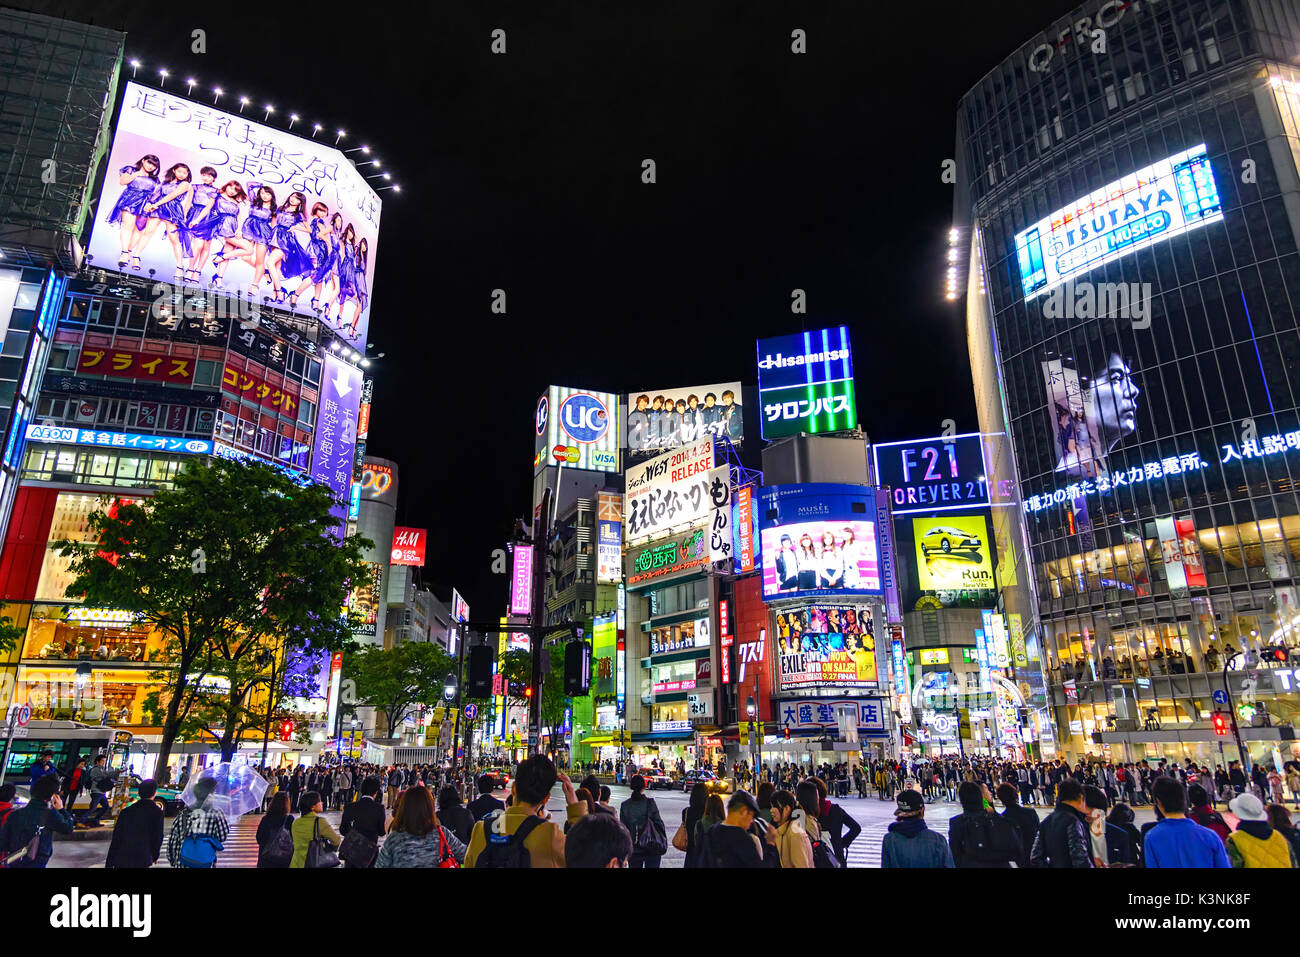 Tokyo, Japan - April 21, 2014: View of Shibuya district at night. Shibuya is known as one of the fashion centers of Japan - Stock Image